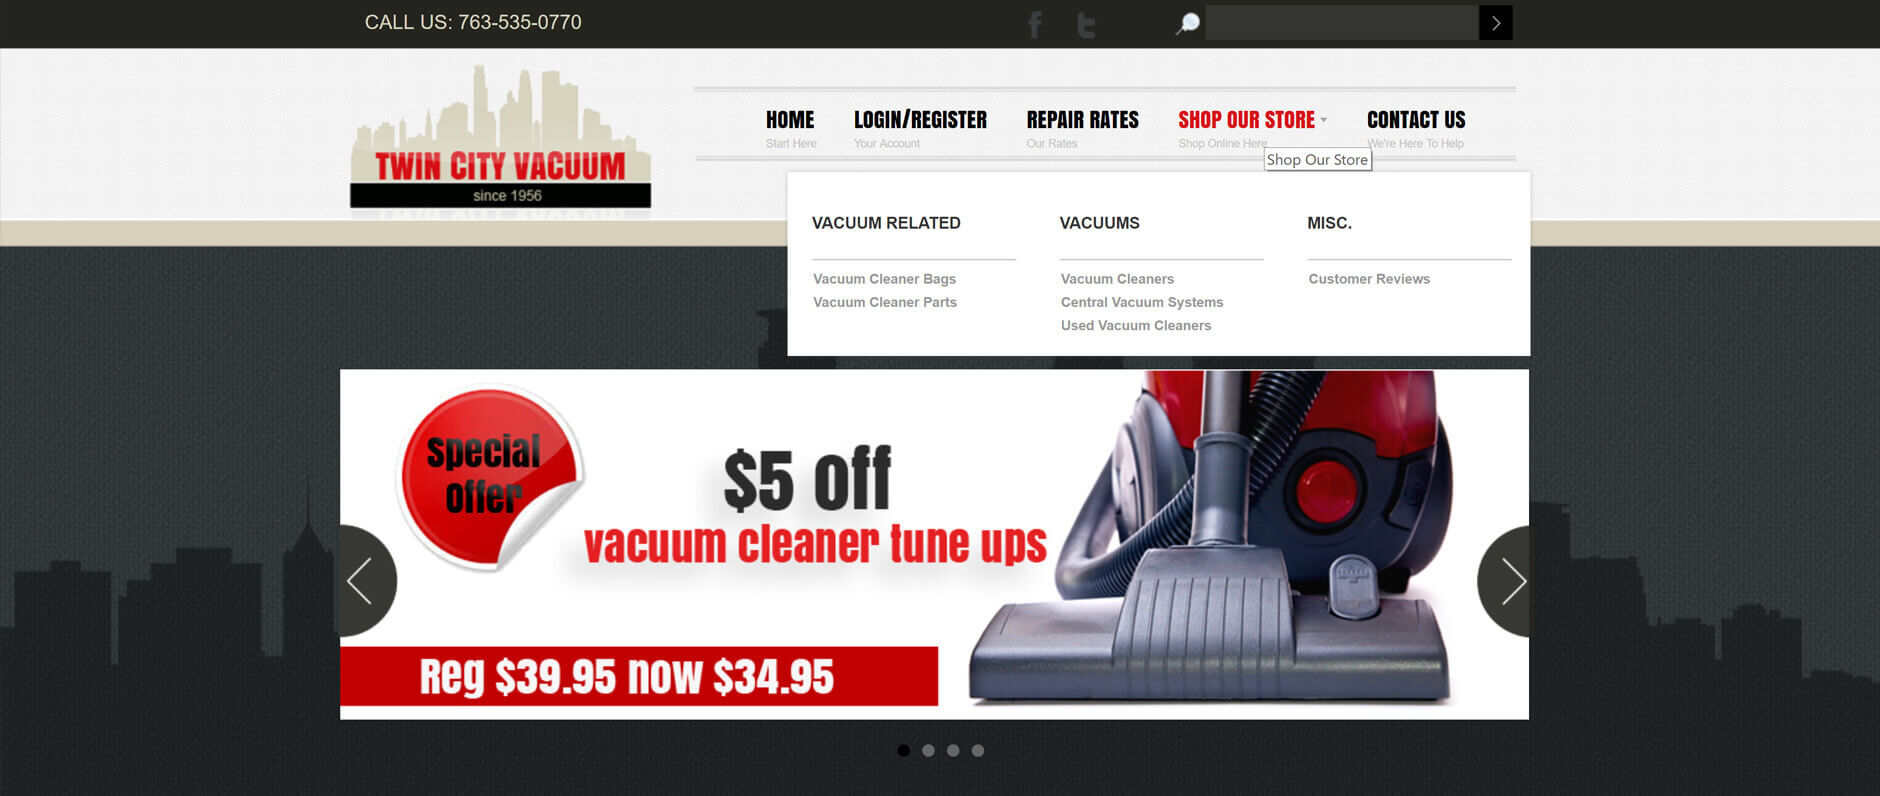 Twin City Vacuum E-Commerce Website By: Janieart.com